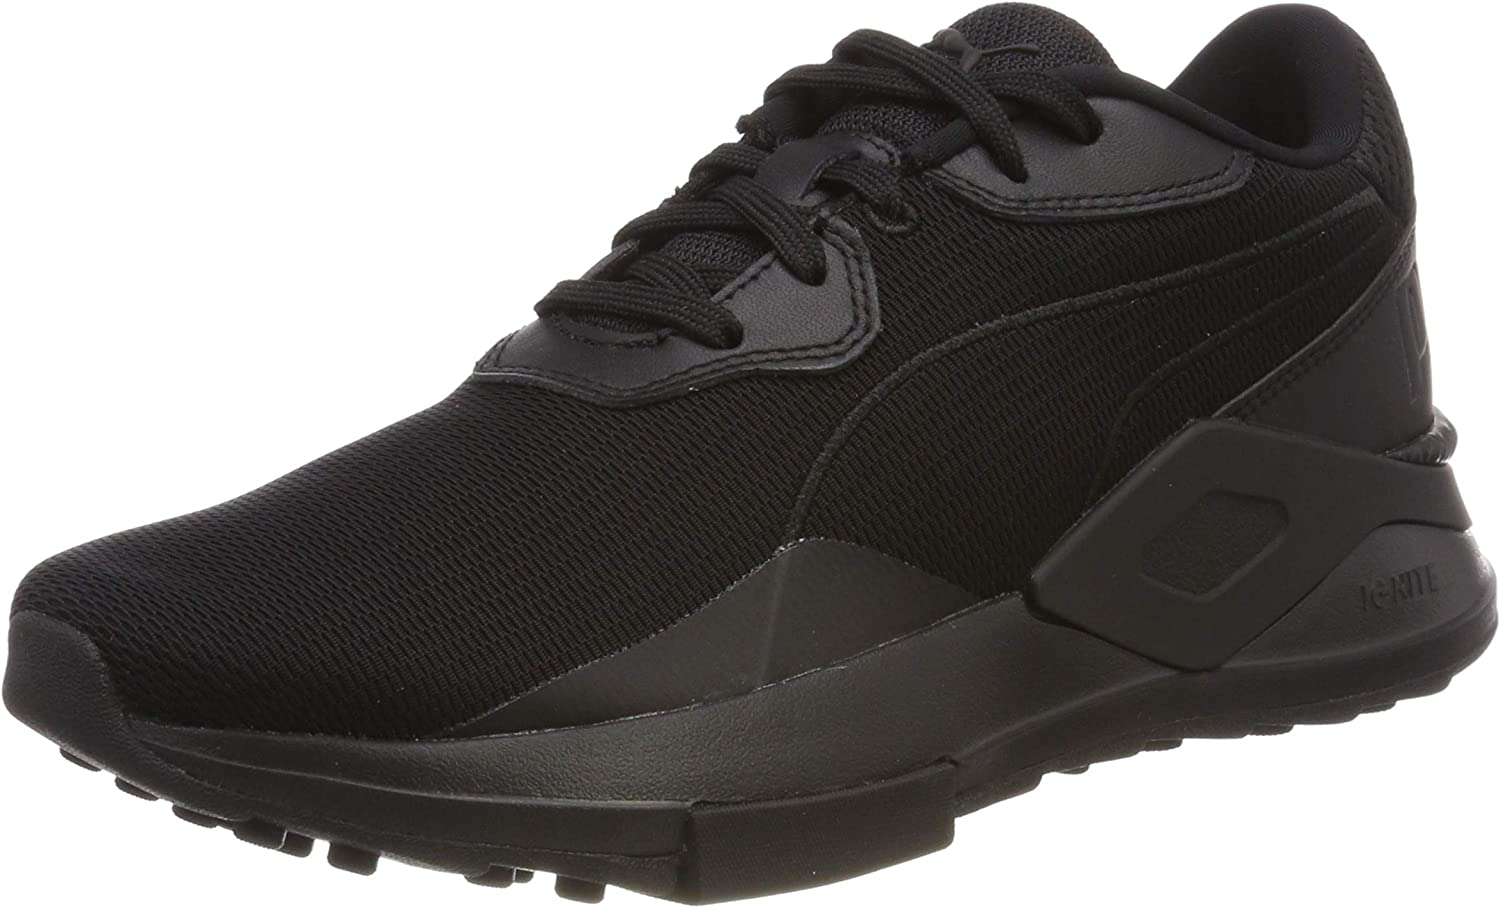 PUMA Unisex Adults' Shoku Non-Knit Bt Low-Top Sneakers